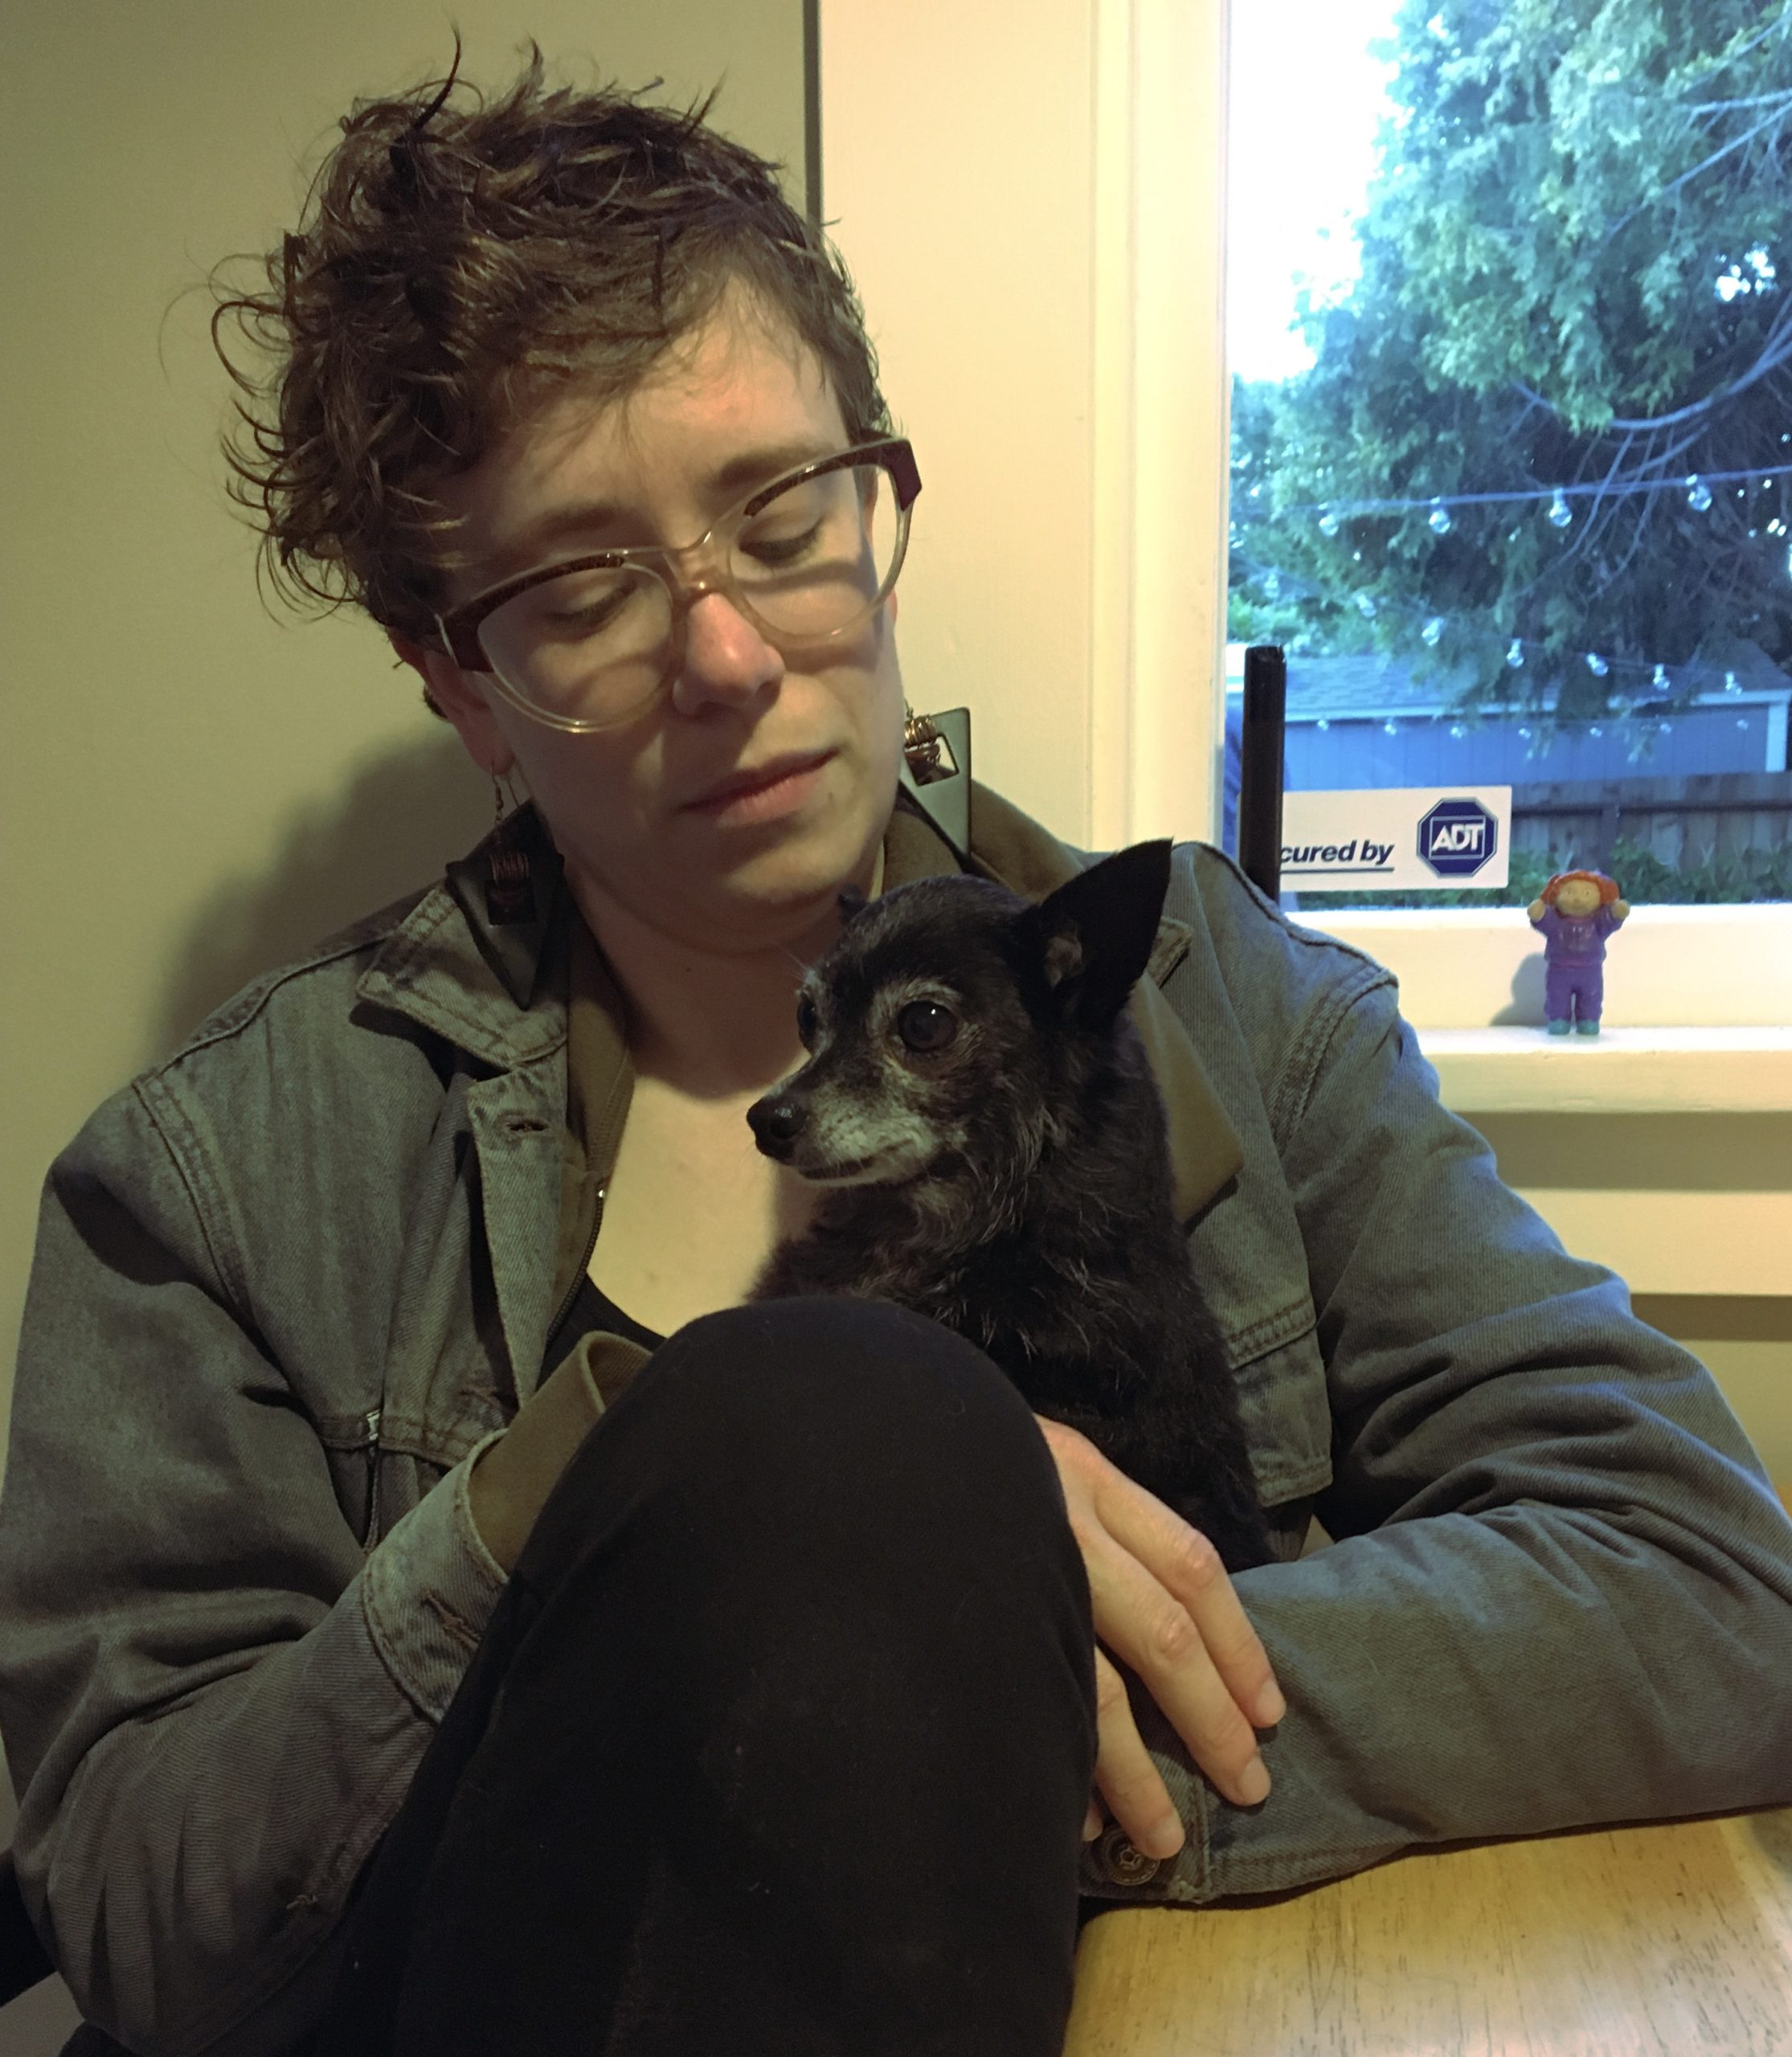 Woman Holding Noble-Looking Chihuahua